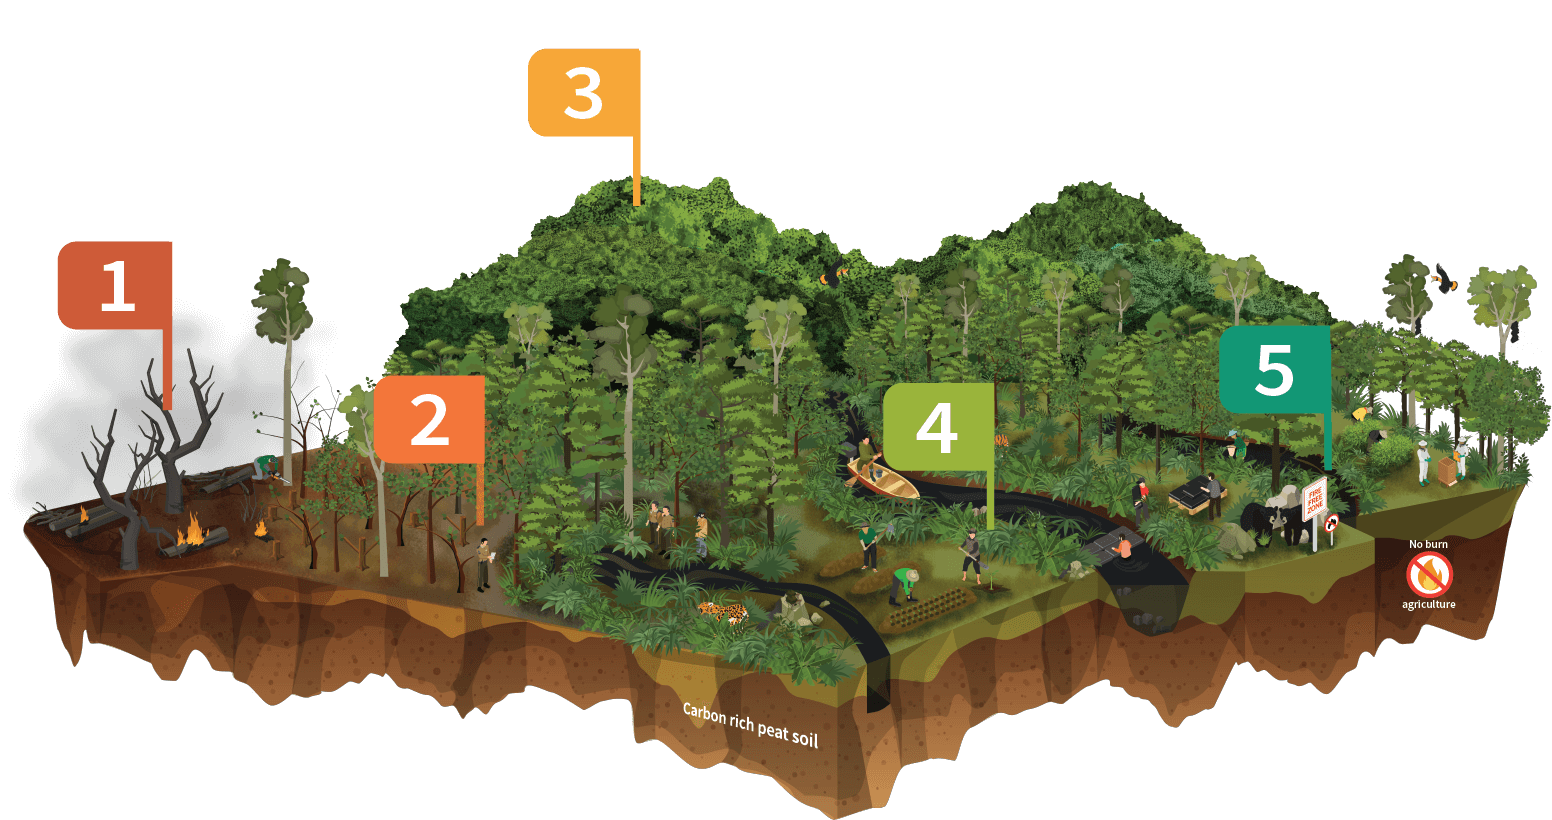 Ecosystem Map - Restoring Forest Ecosystems